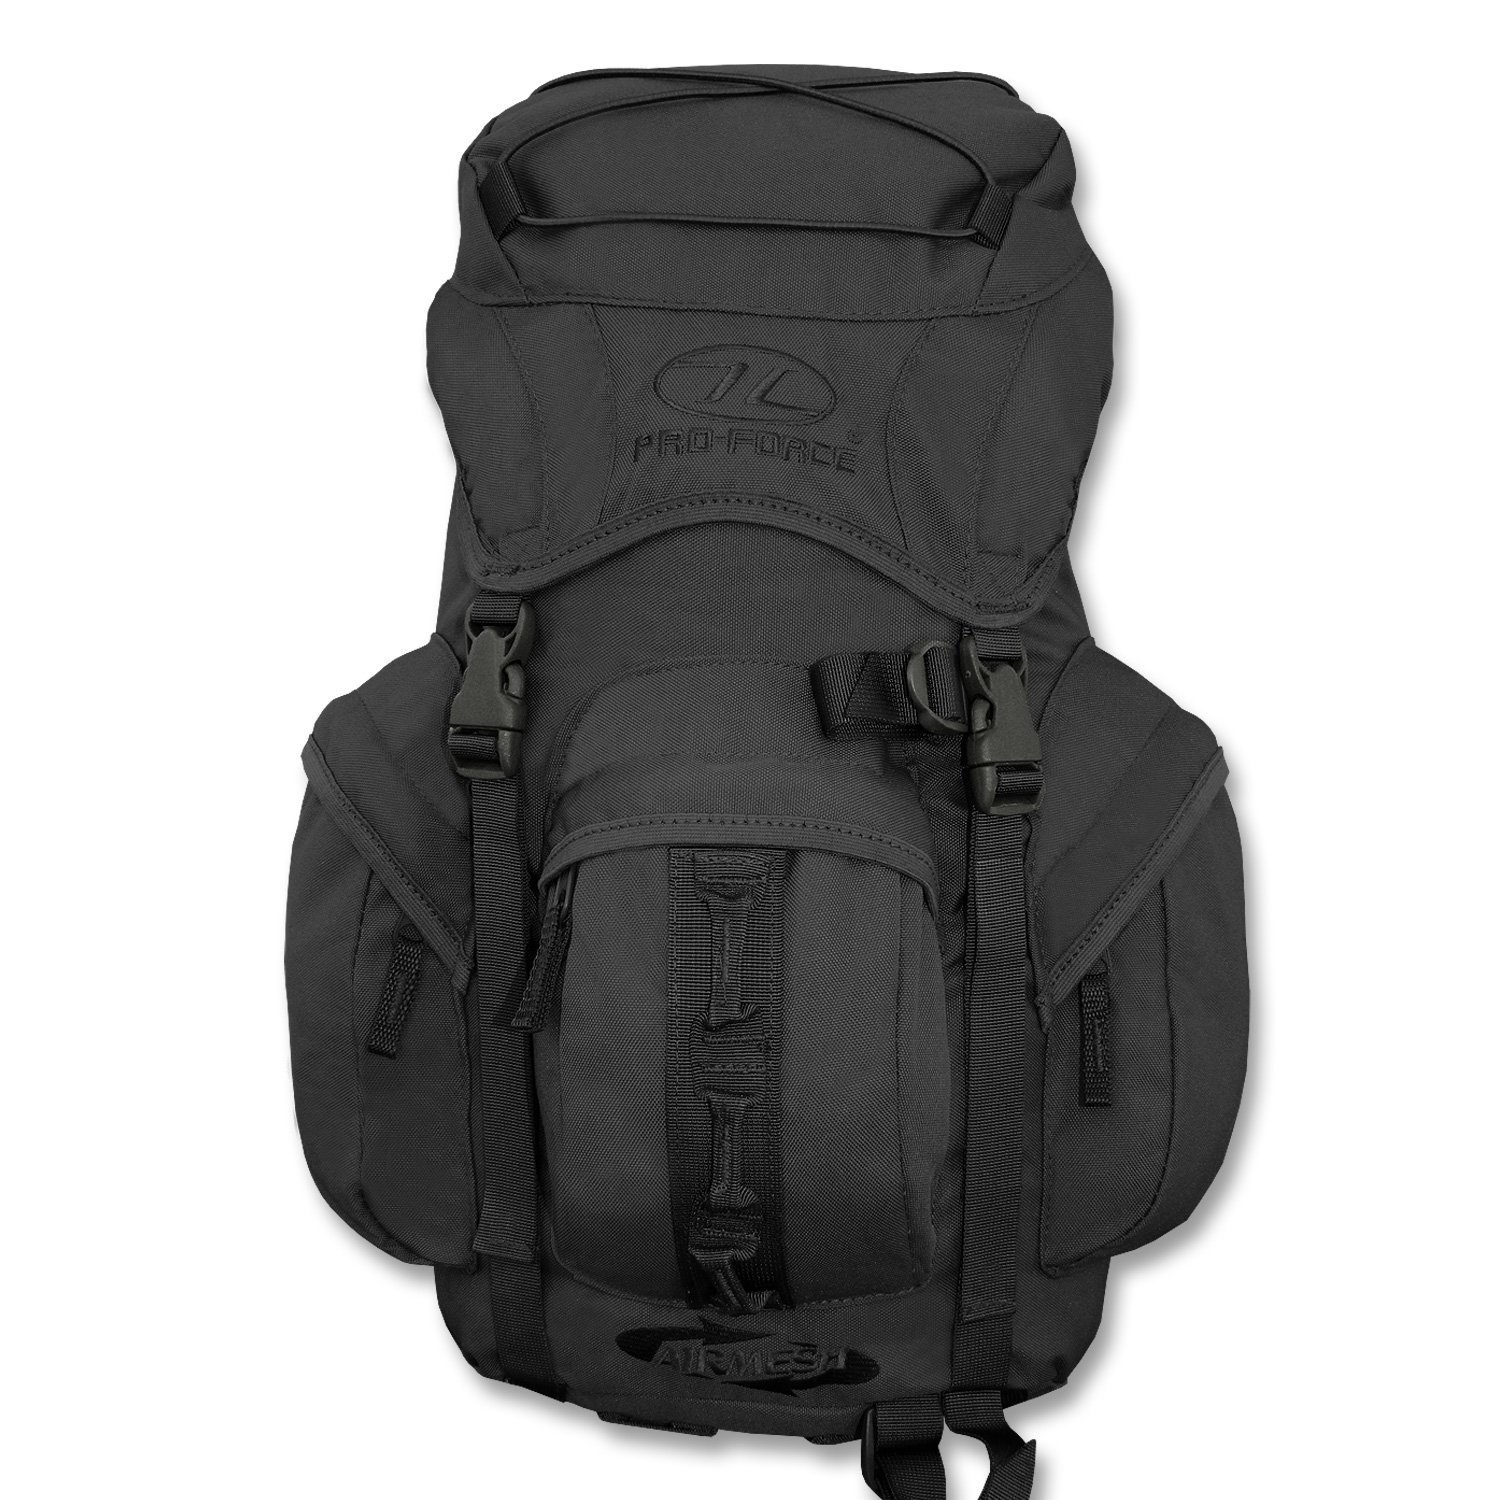 Ar 670 1 Backpack Regulations Sante Blog